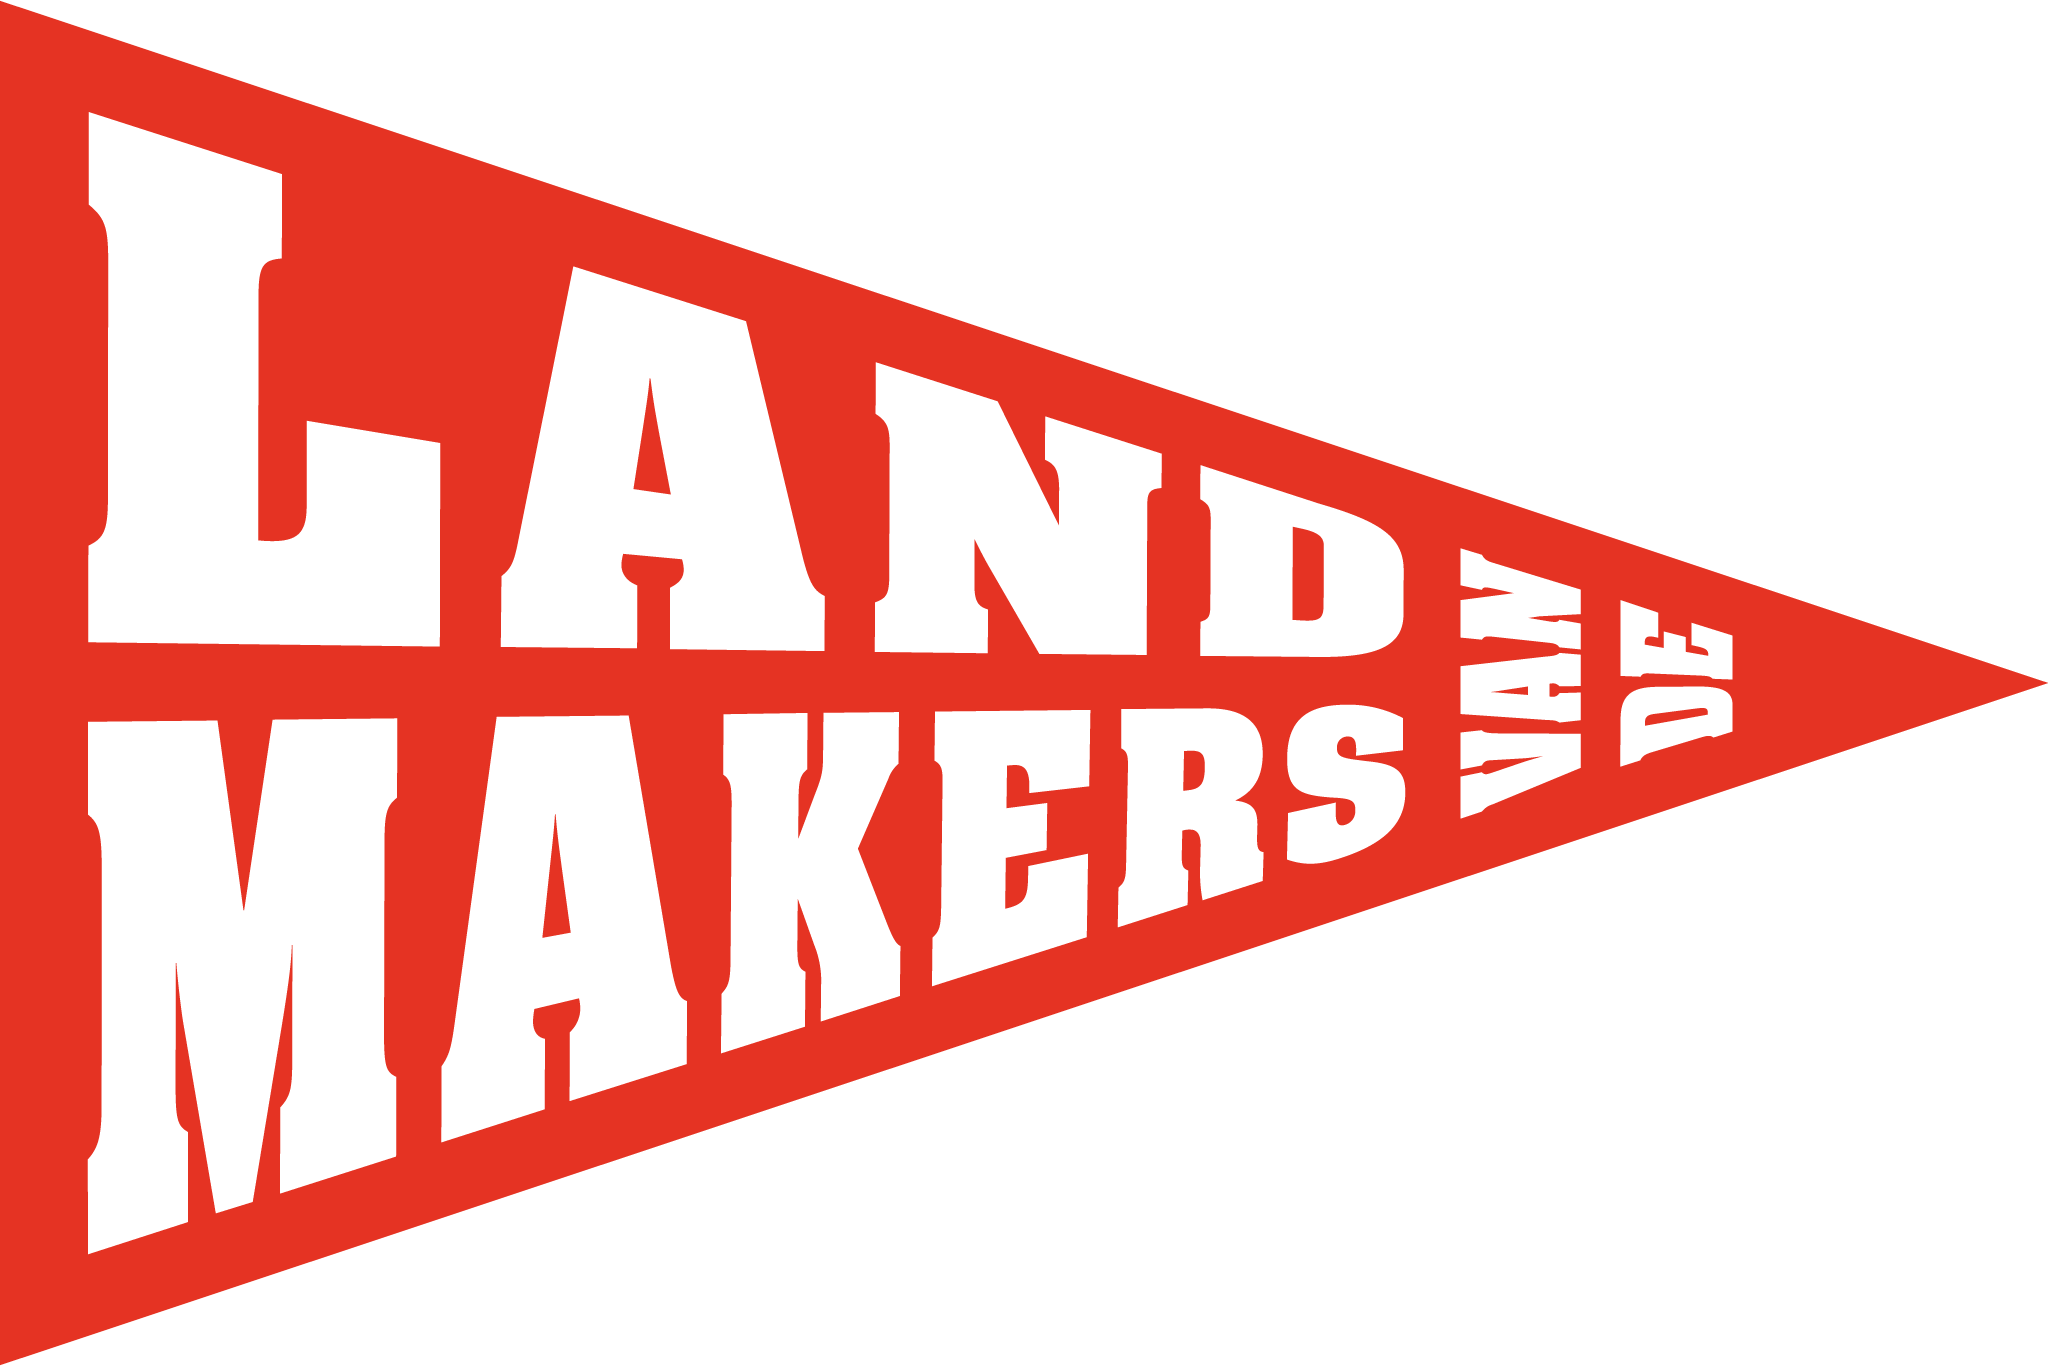 Land van de Makers